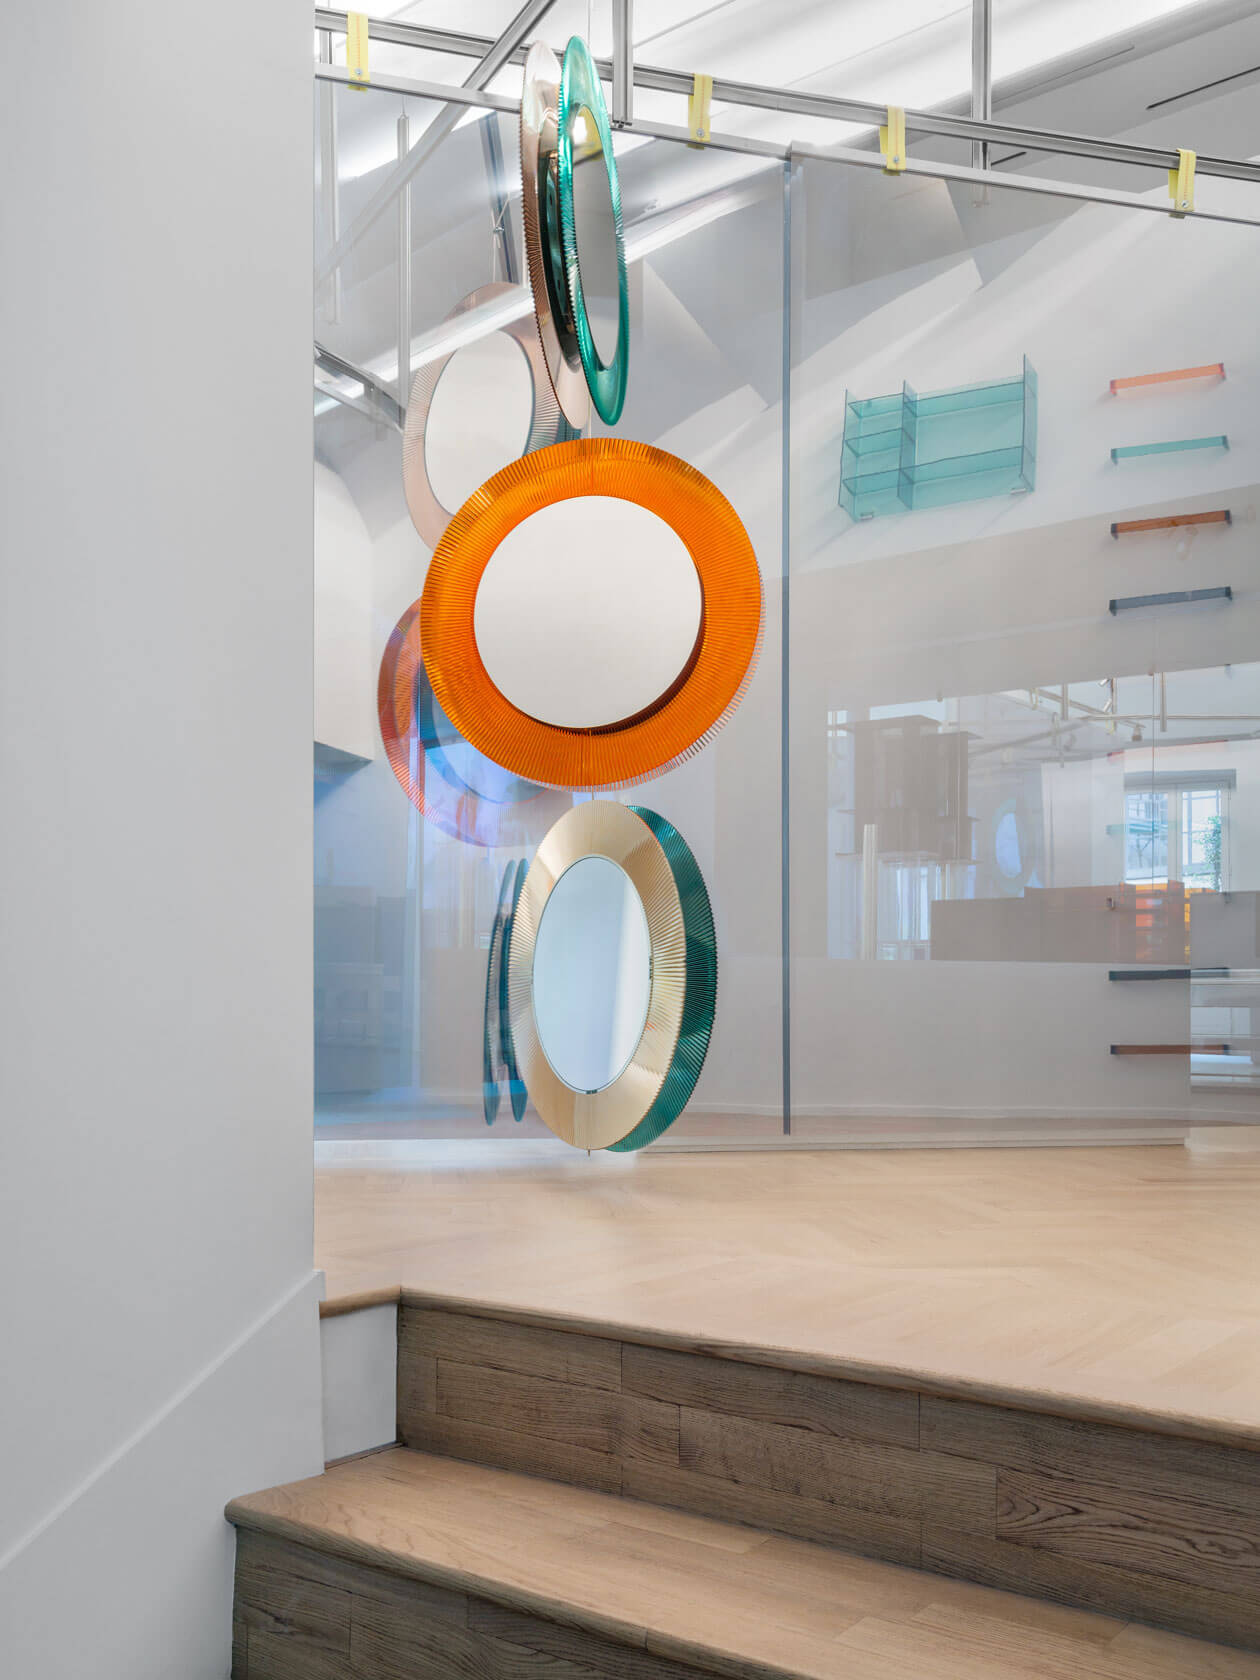 Round mirrors hanging like a mobile from the ceiling reflected in a mirror wall.